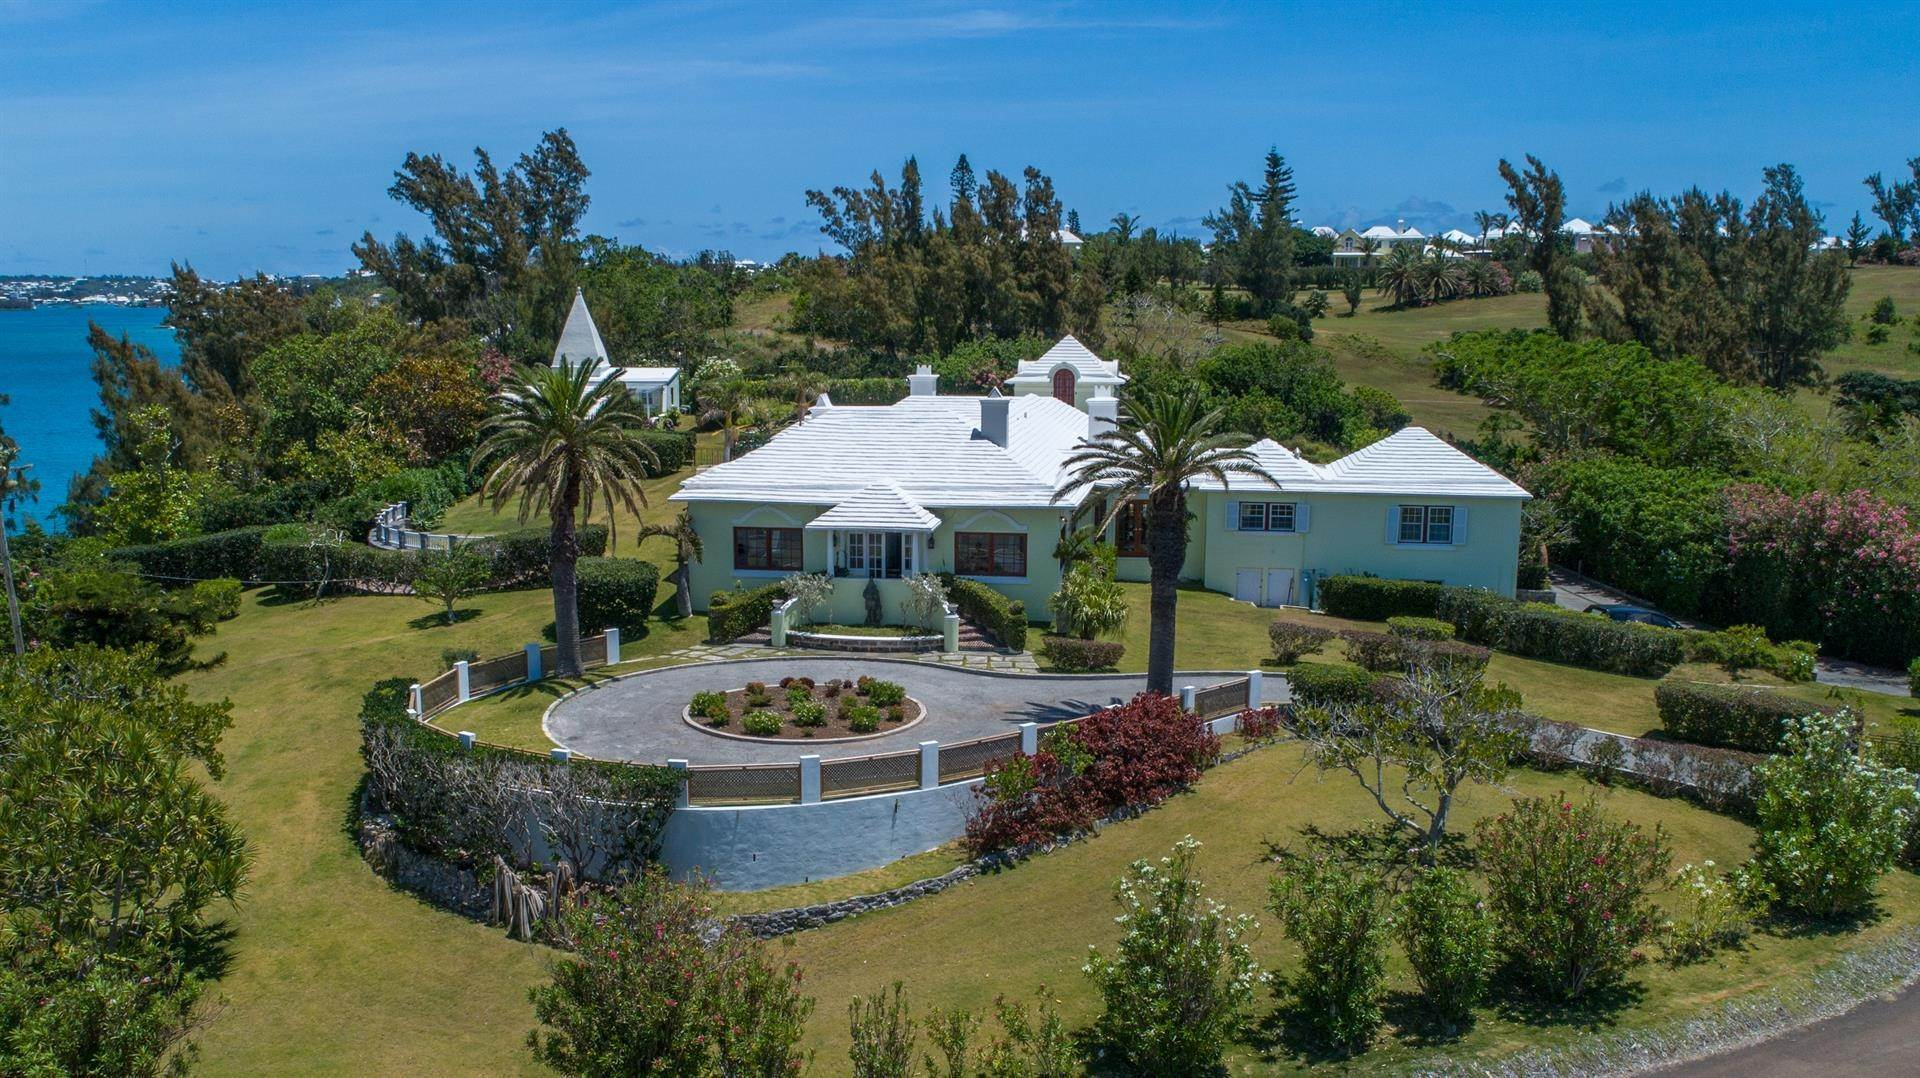 4. Vid Vattnet för Försäljning vid Heron Hill On The Great Sound Heron Hill On The Great Sound, 31 Riddell's Bay Road,Bermuda – Sinclair Realty